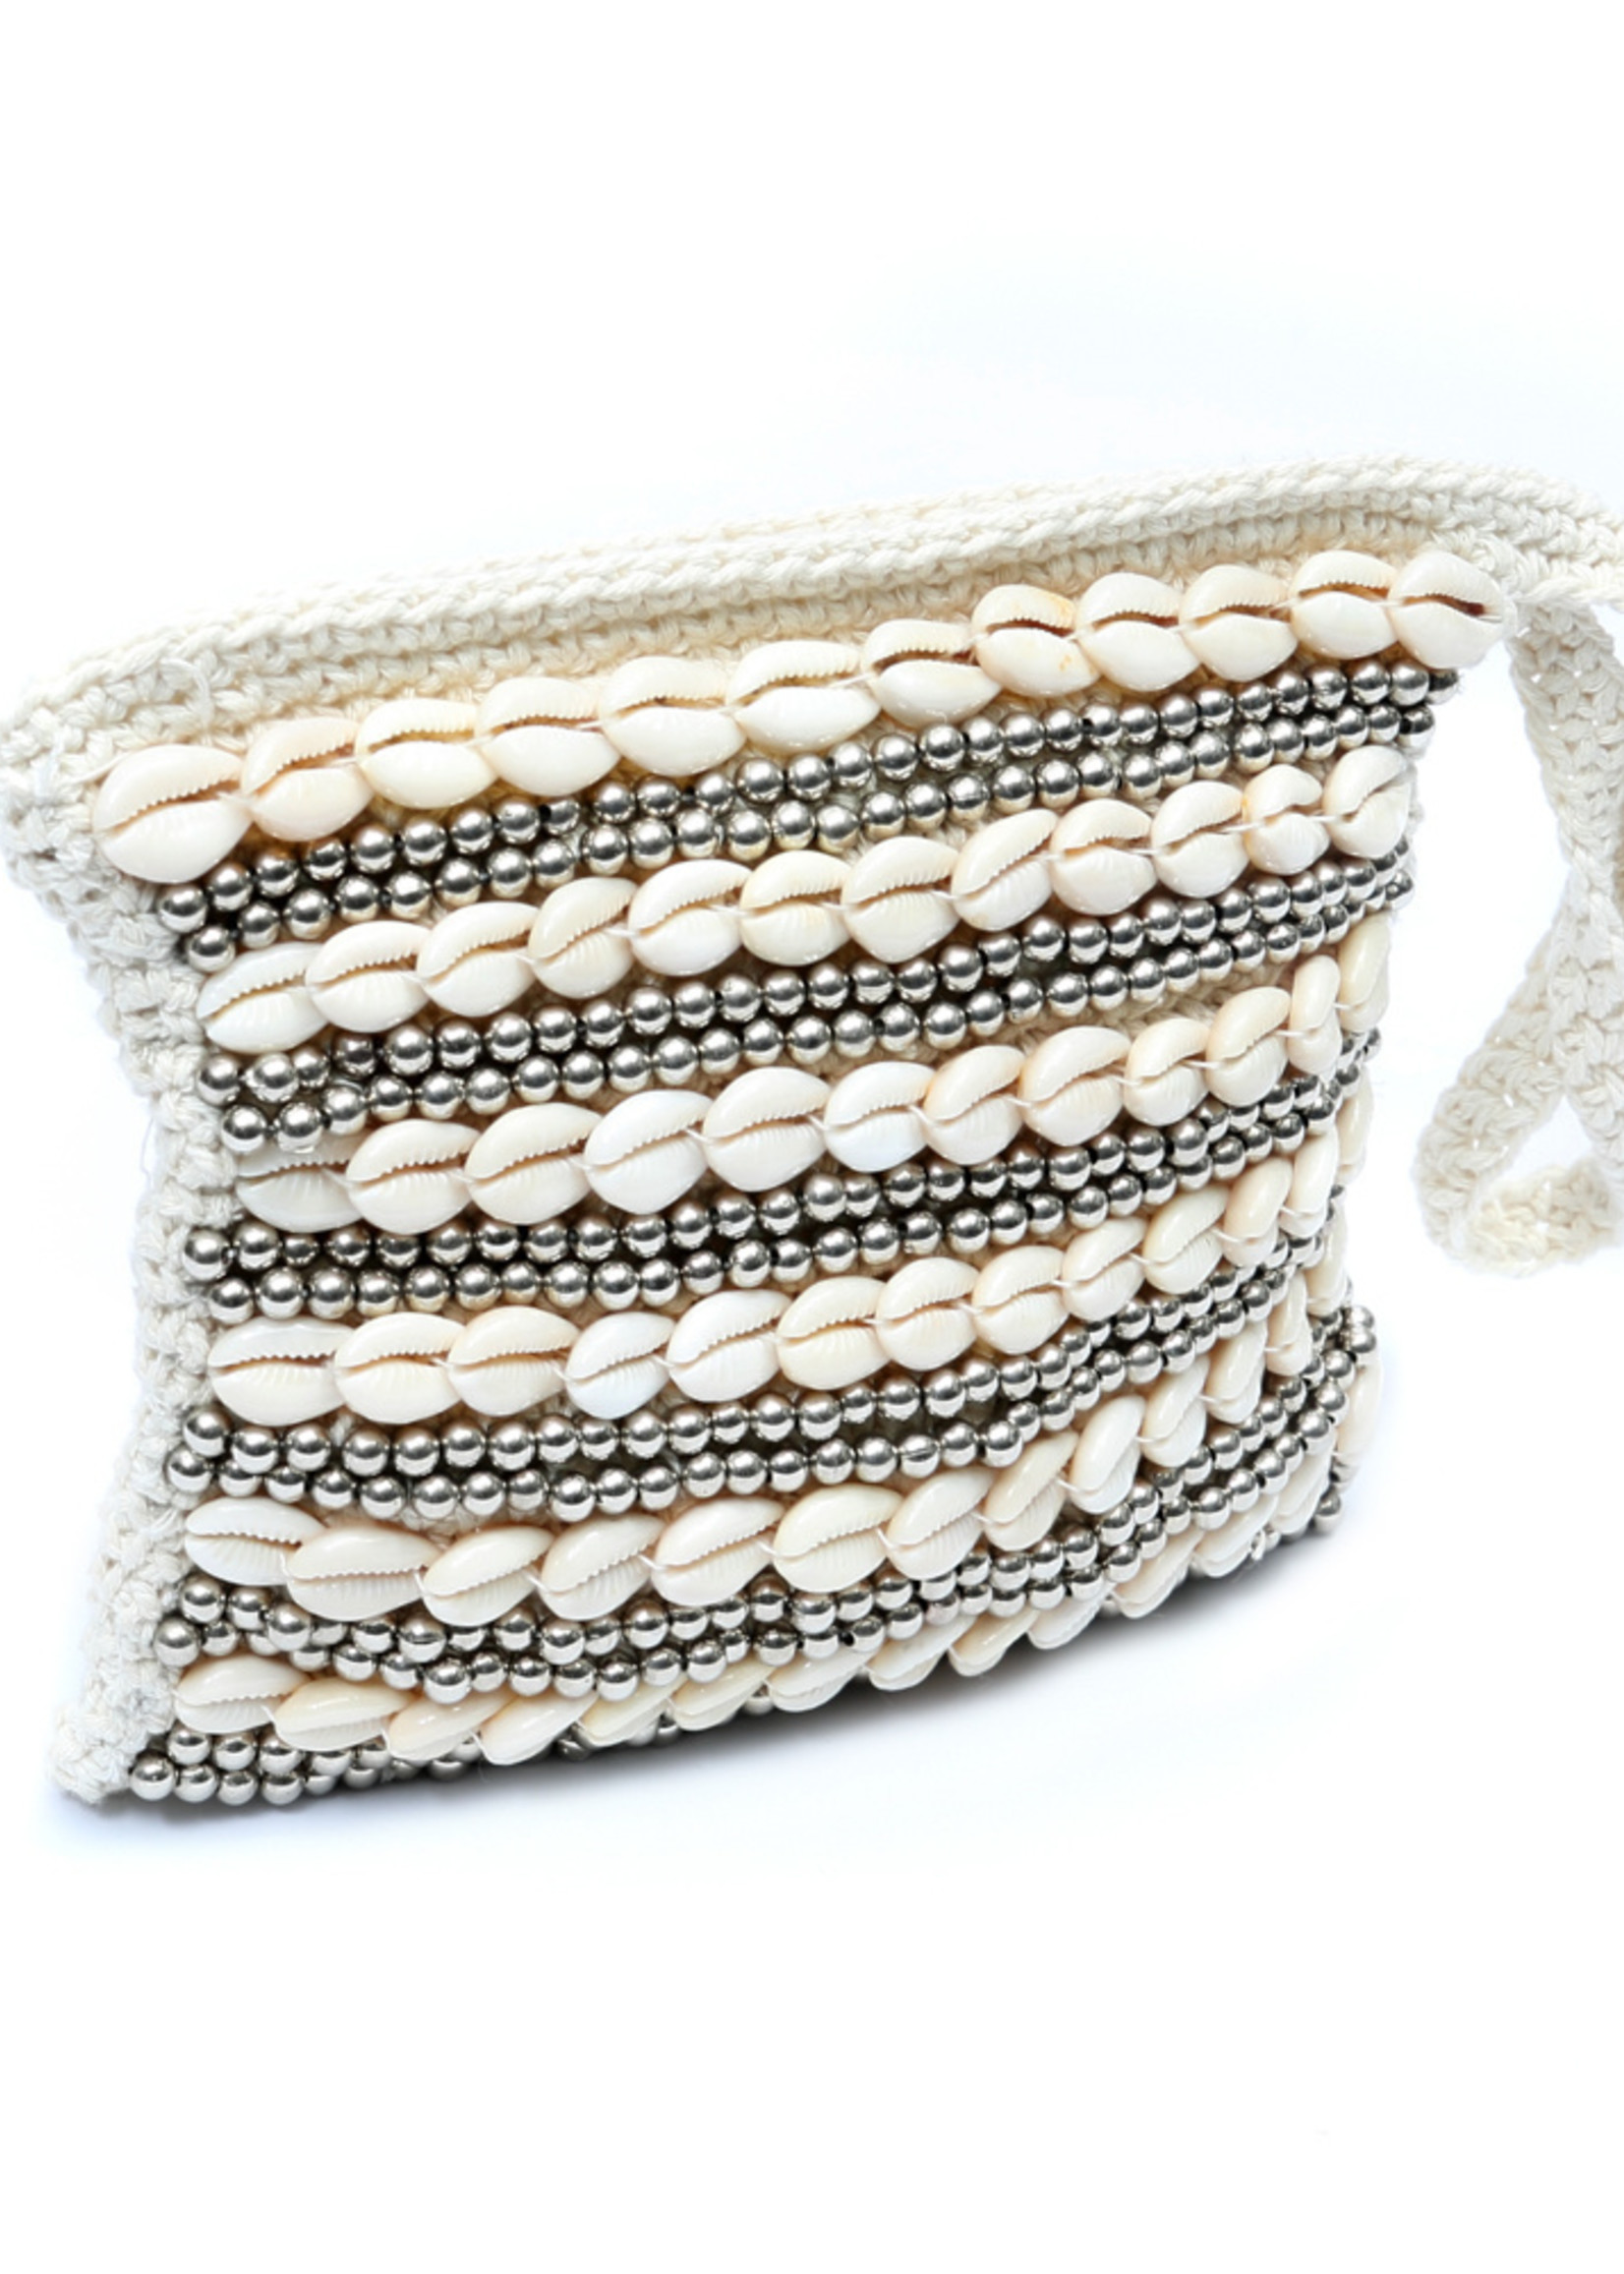 The Clutch Beaded - Natural Silver